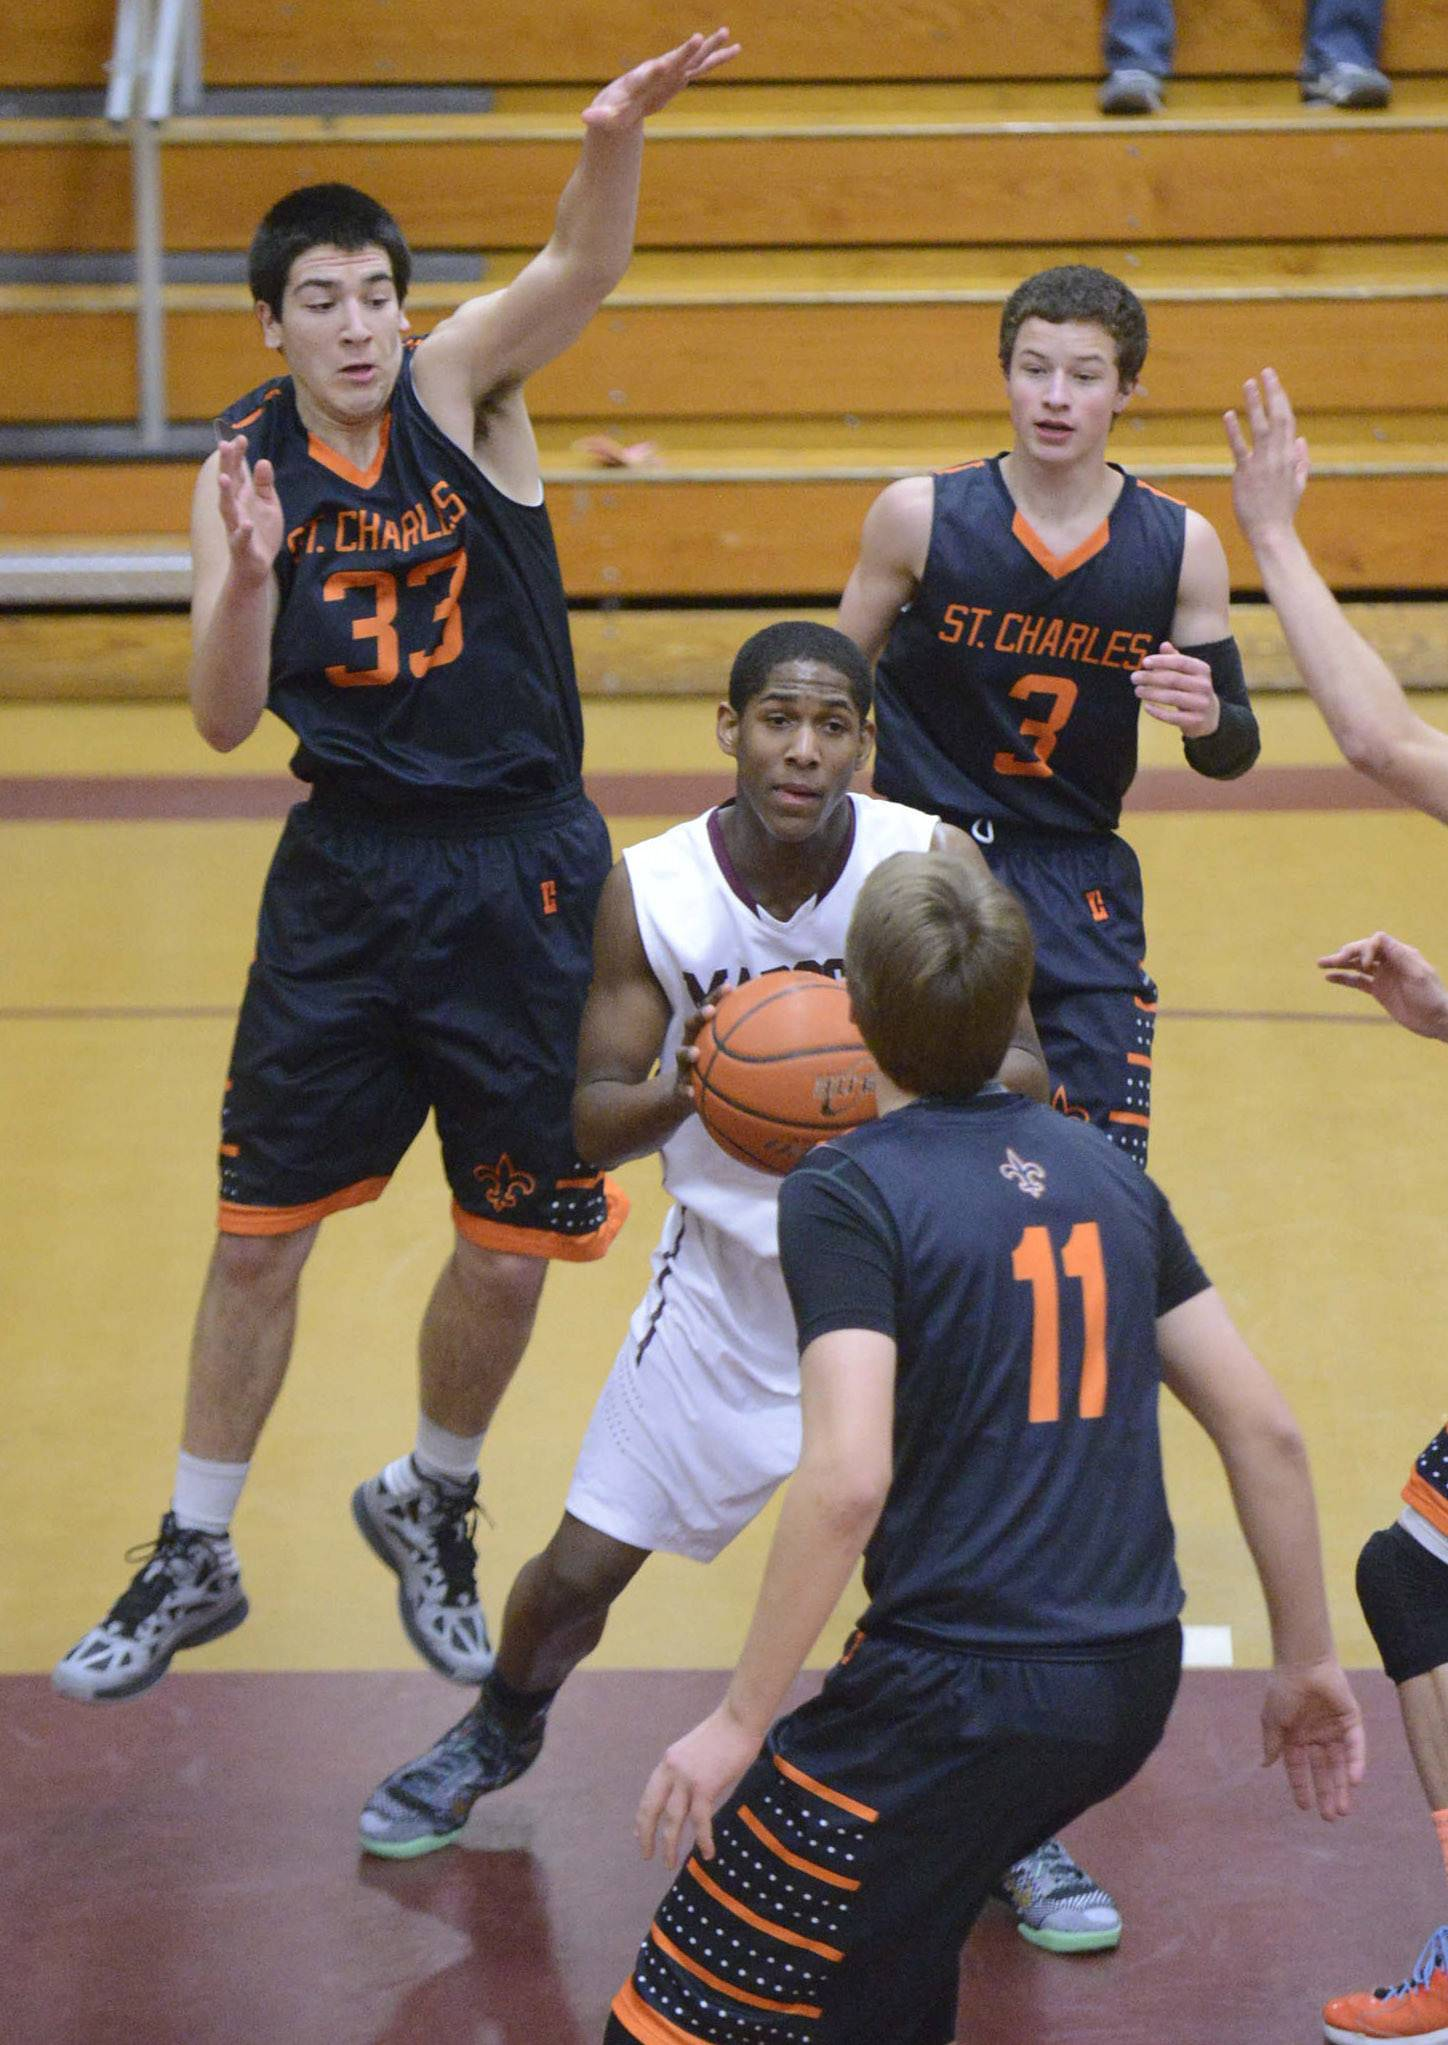 Images from the St. Charles East at Elgin boys basketball game Friday, February 21, 2014 in Elgin.